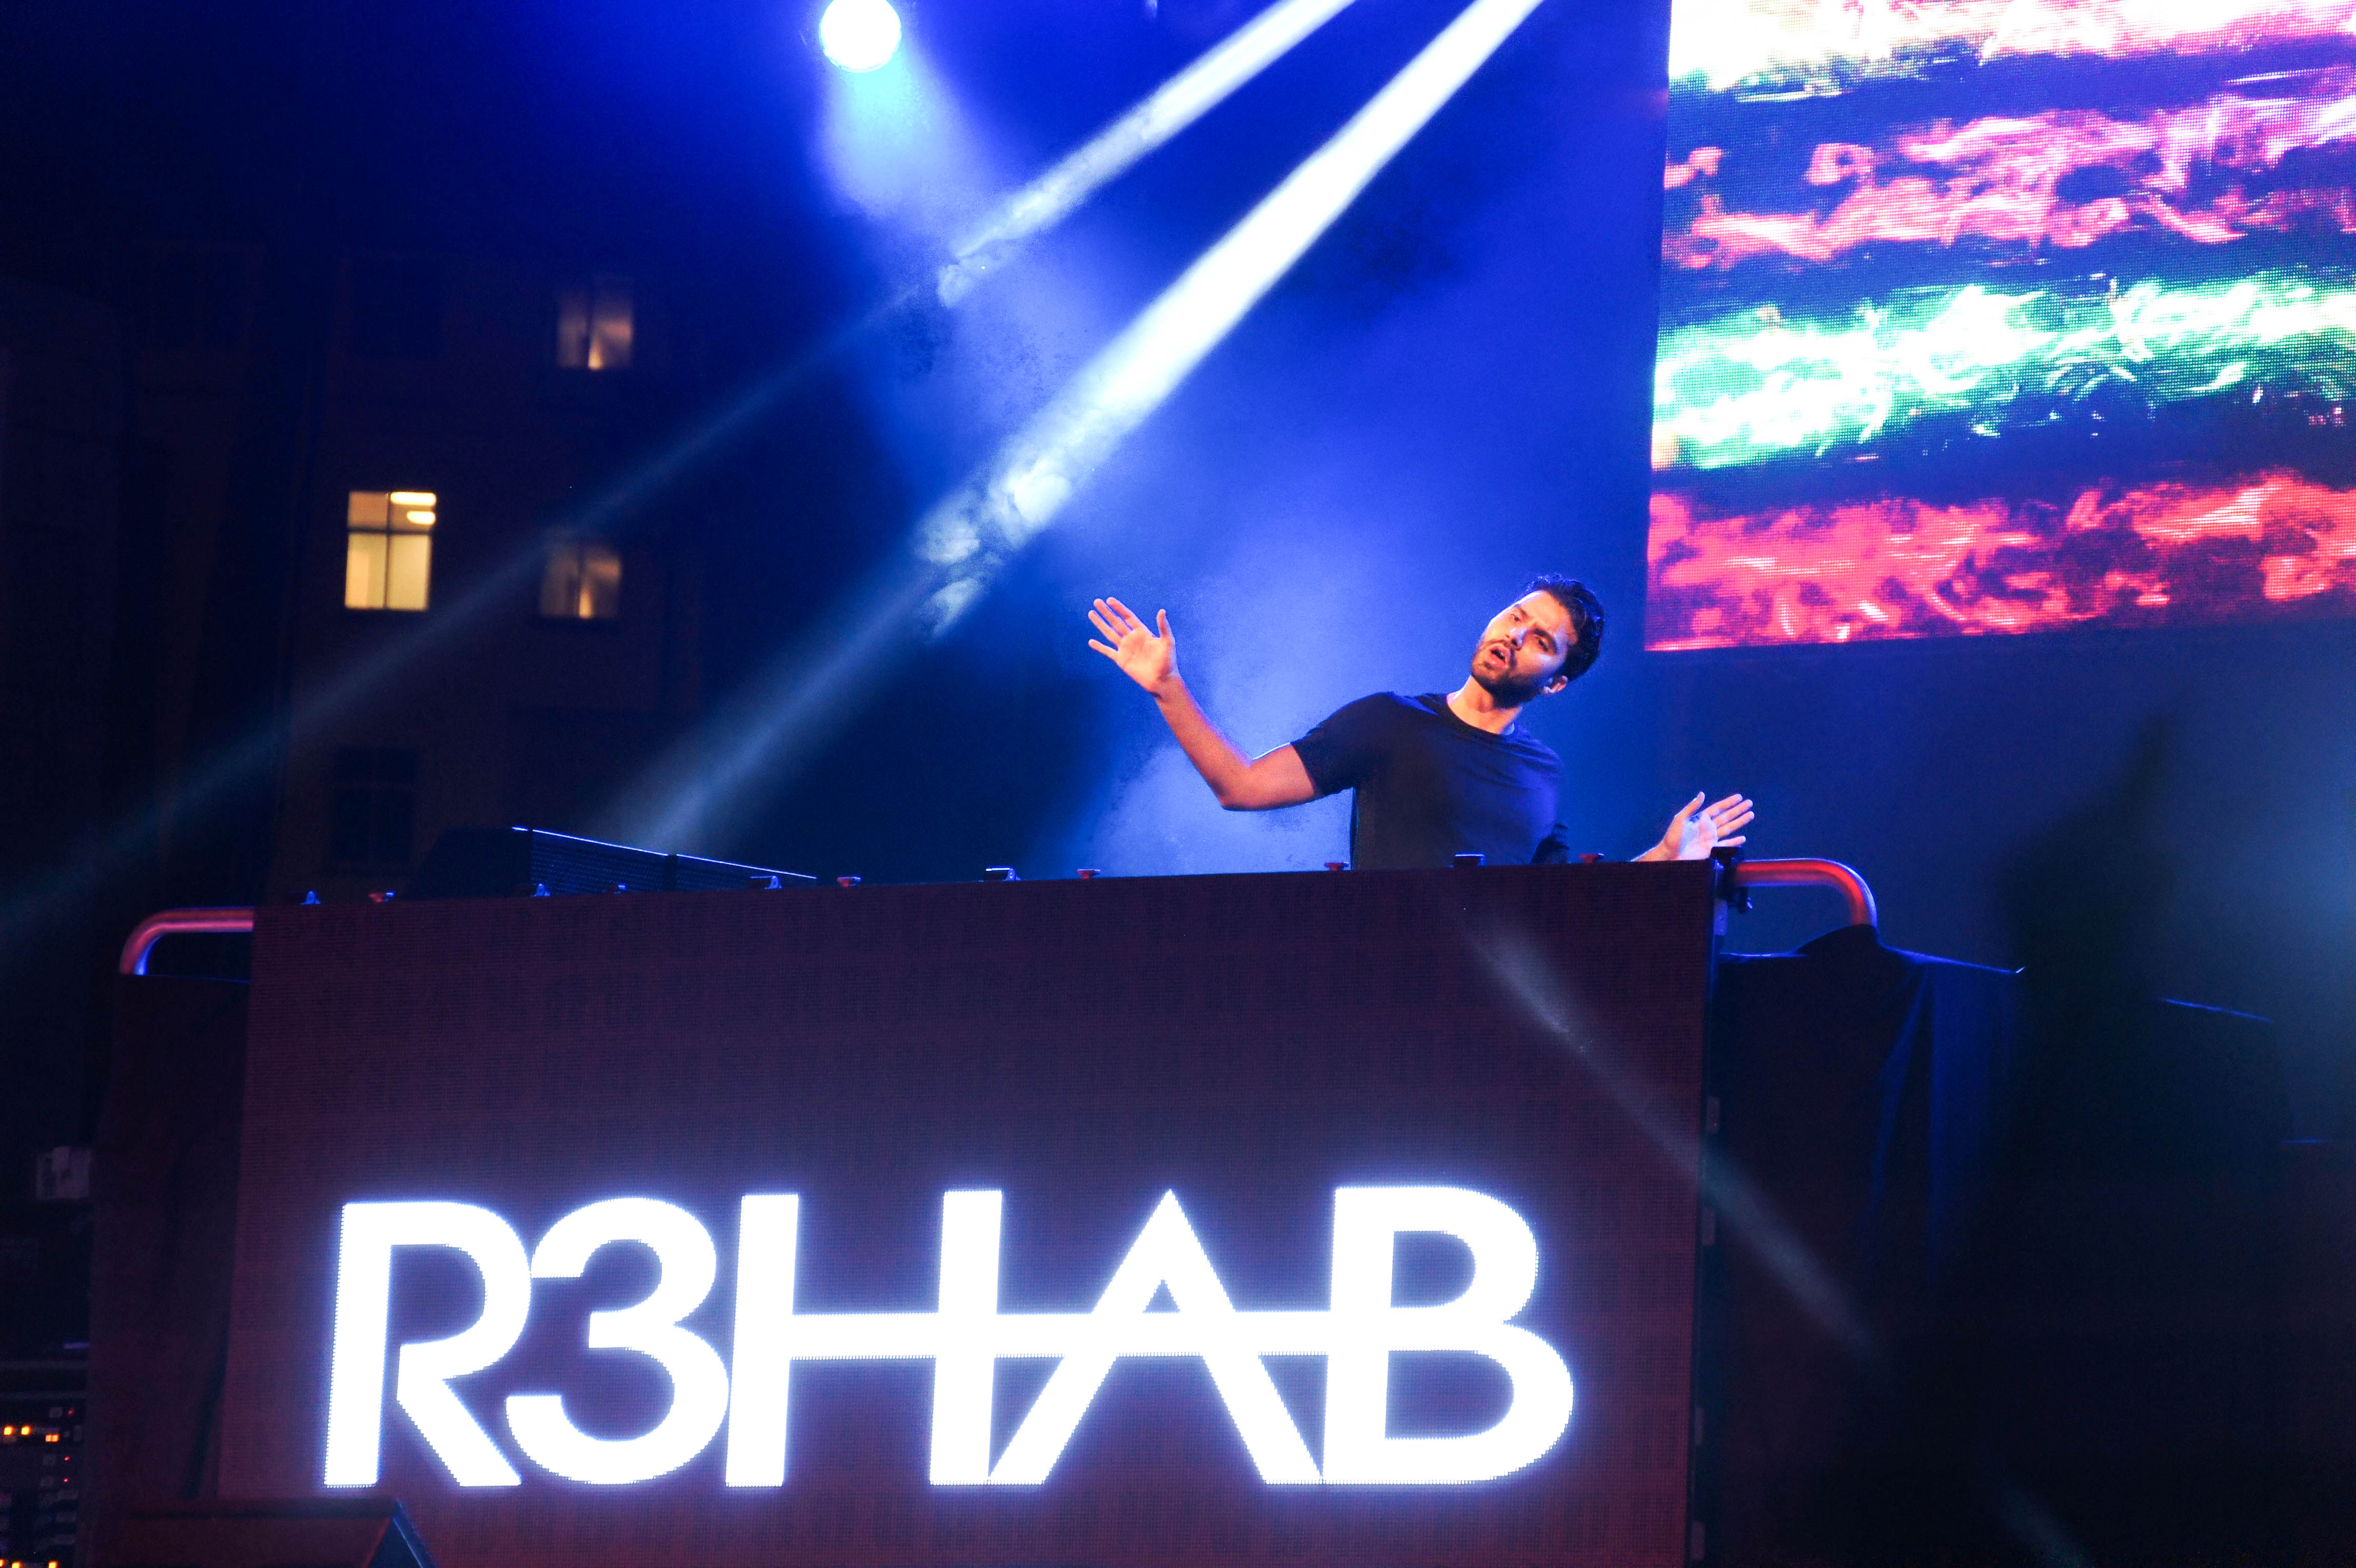 DJ R3hab Attempts to Pump Up the Crowd